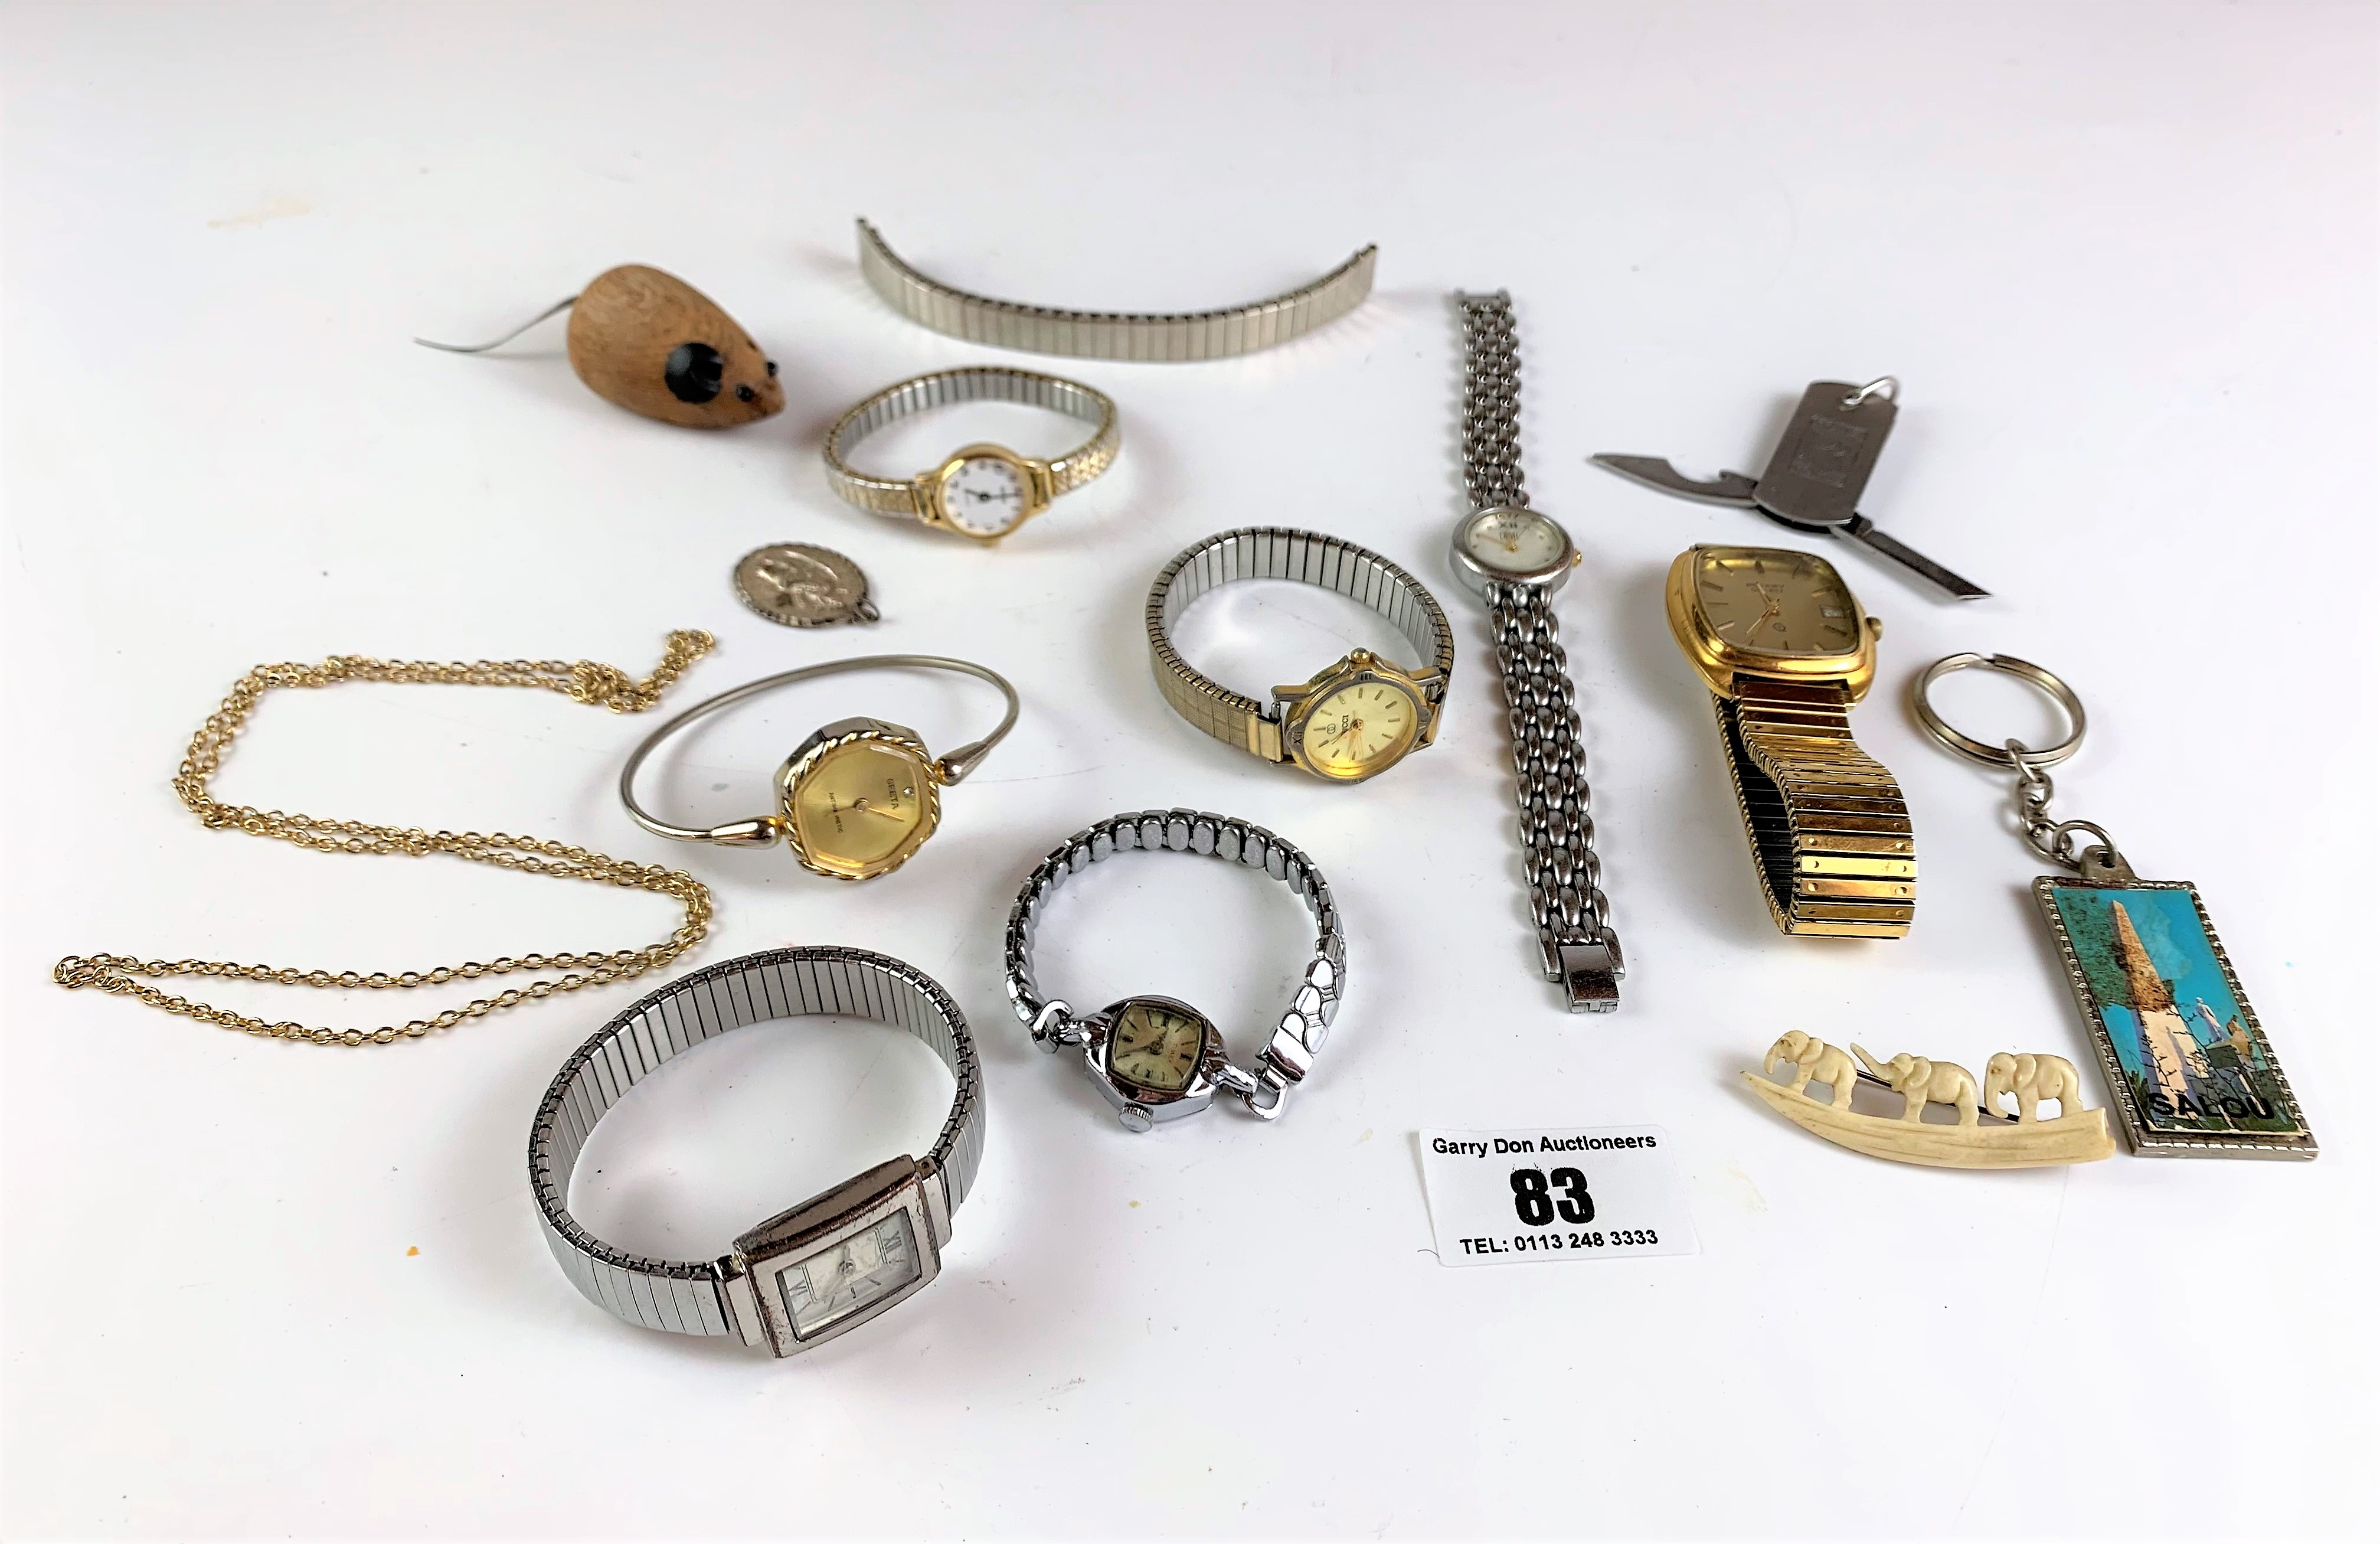 Bag of assorted dress watches, necklaces, keyrings and wooden mouse